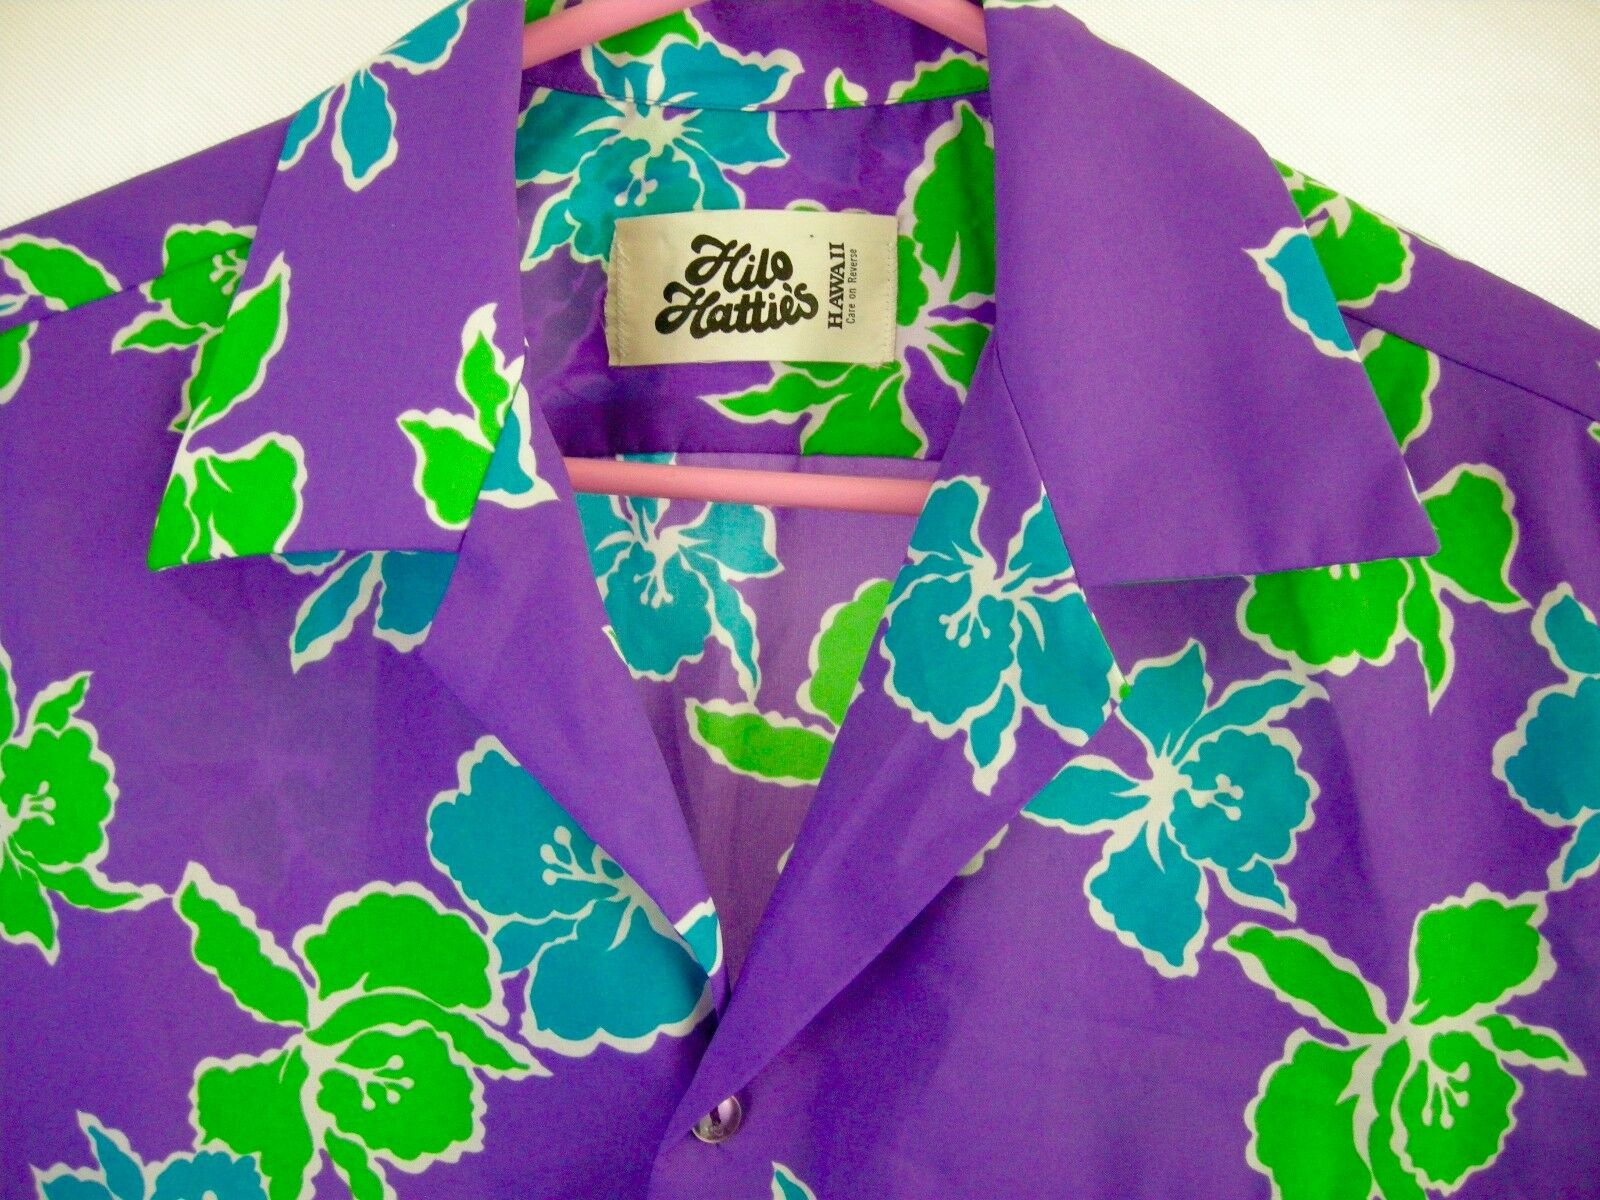 9192cd39 Men 70s VTG HILO HATTIE'S Hawaiian Aloha Shirt Purple Green bluee White Med  Mod